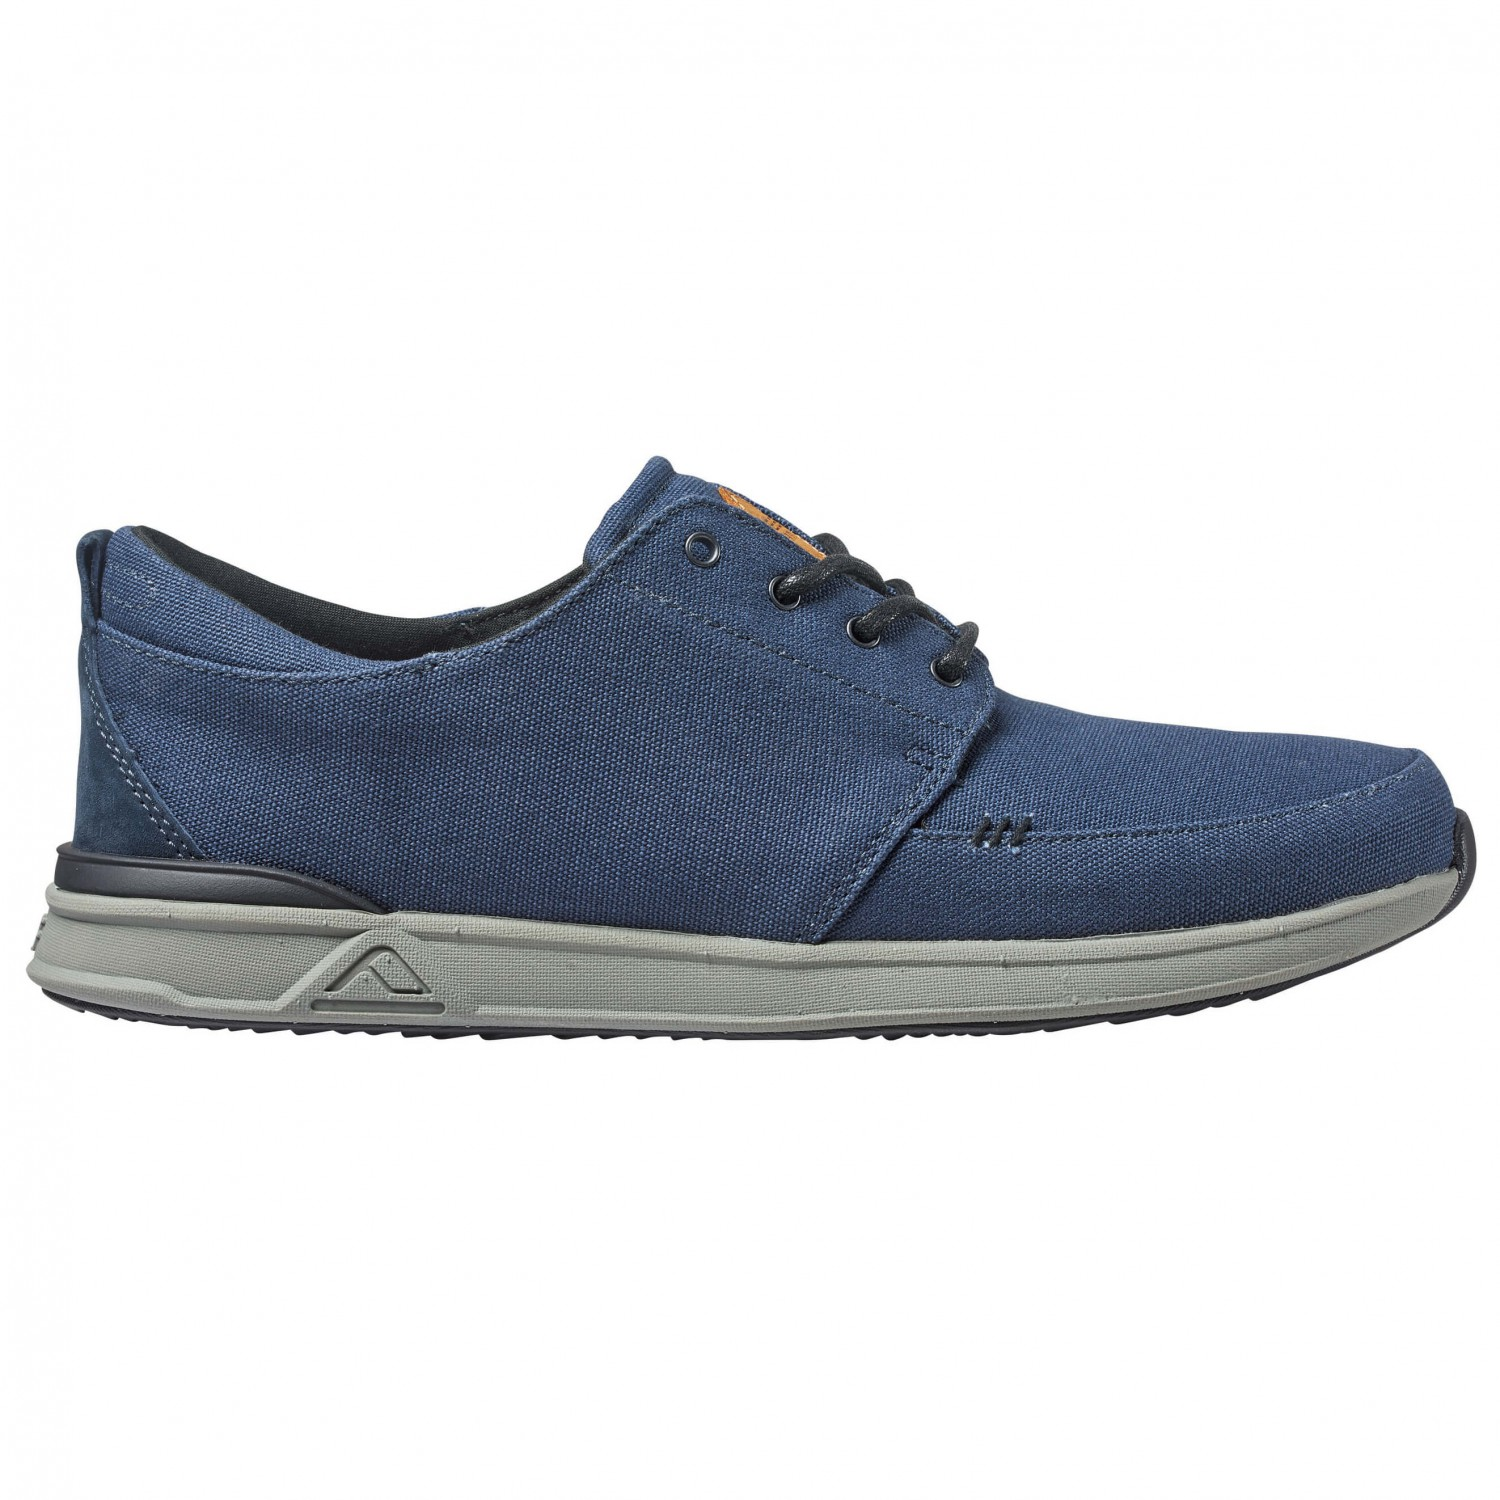 Where To Buy Reef Shoes In Canada